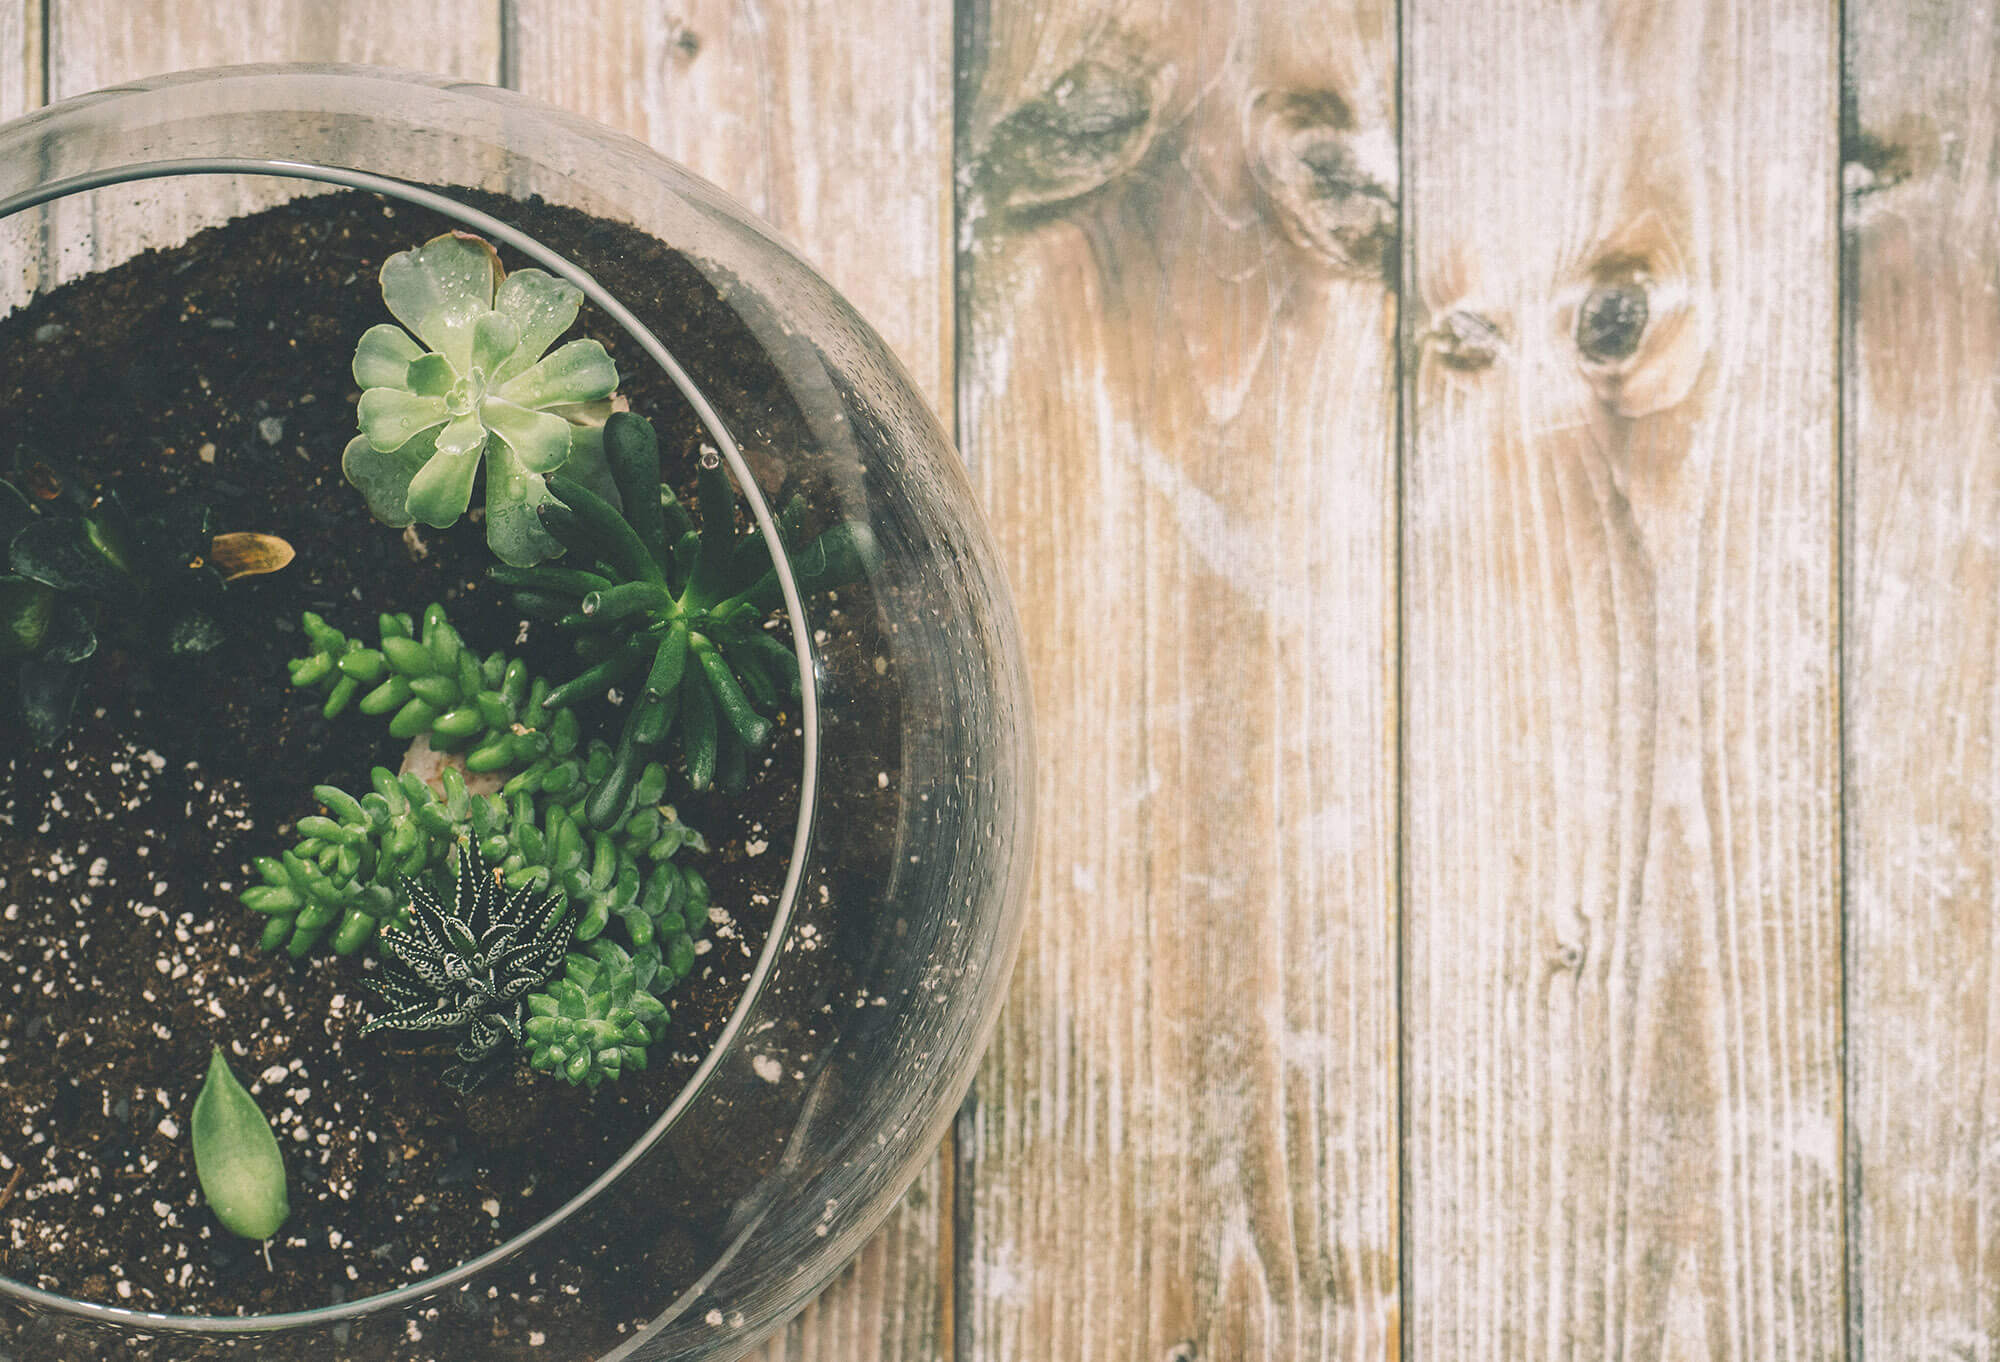 A glass bowl of potted succulent plants sits on the far left side of the image and sits on top of aged wood planks.